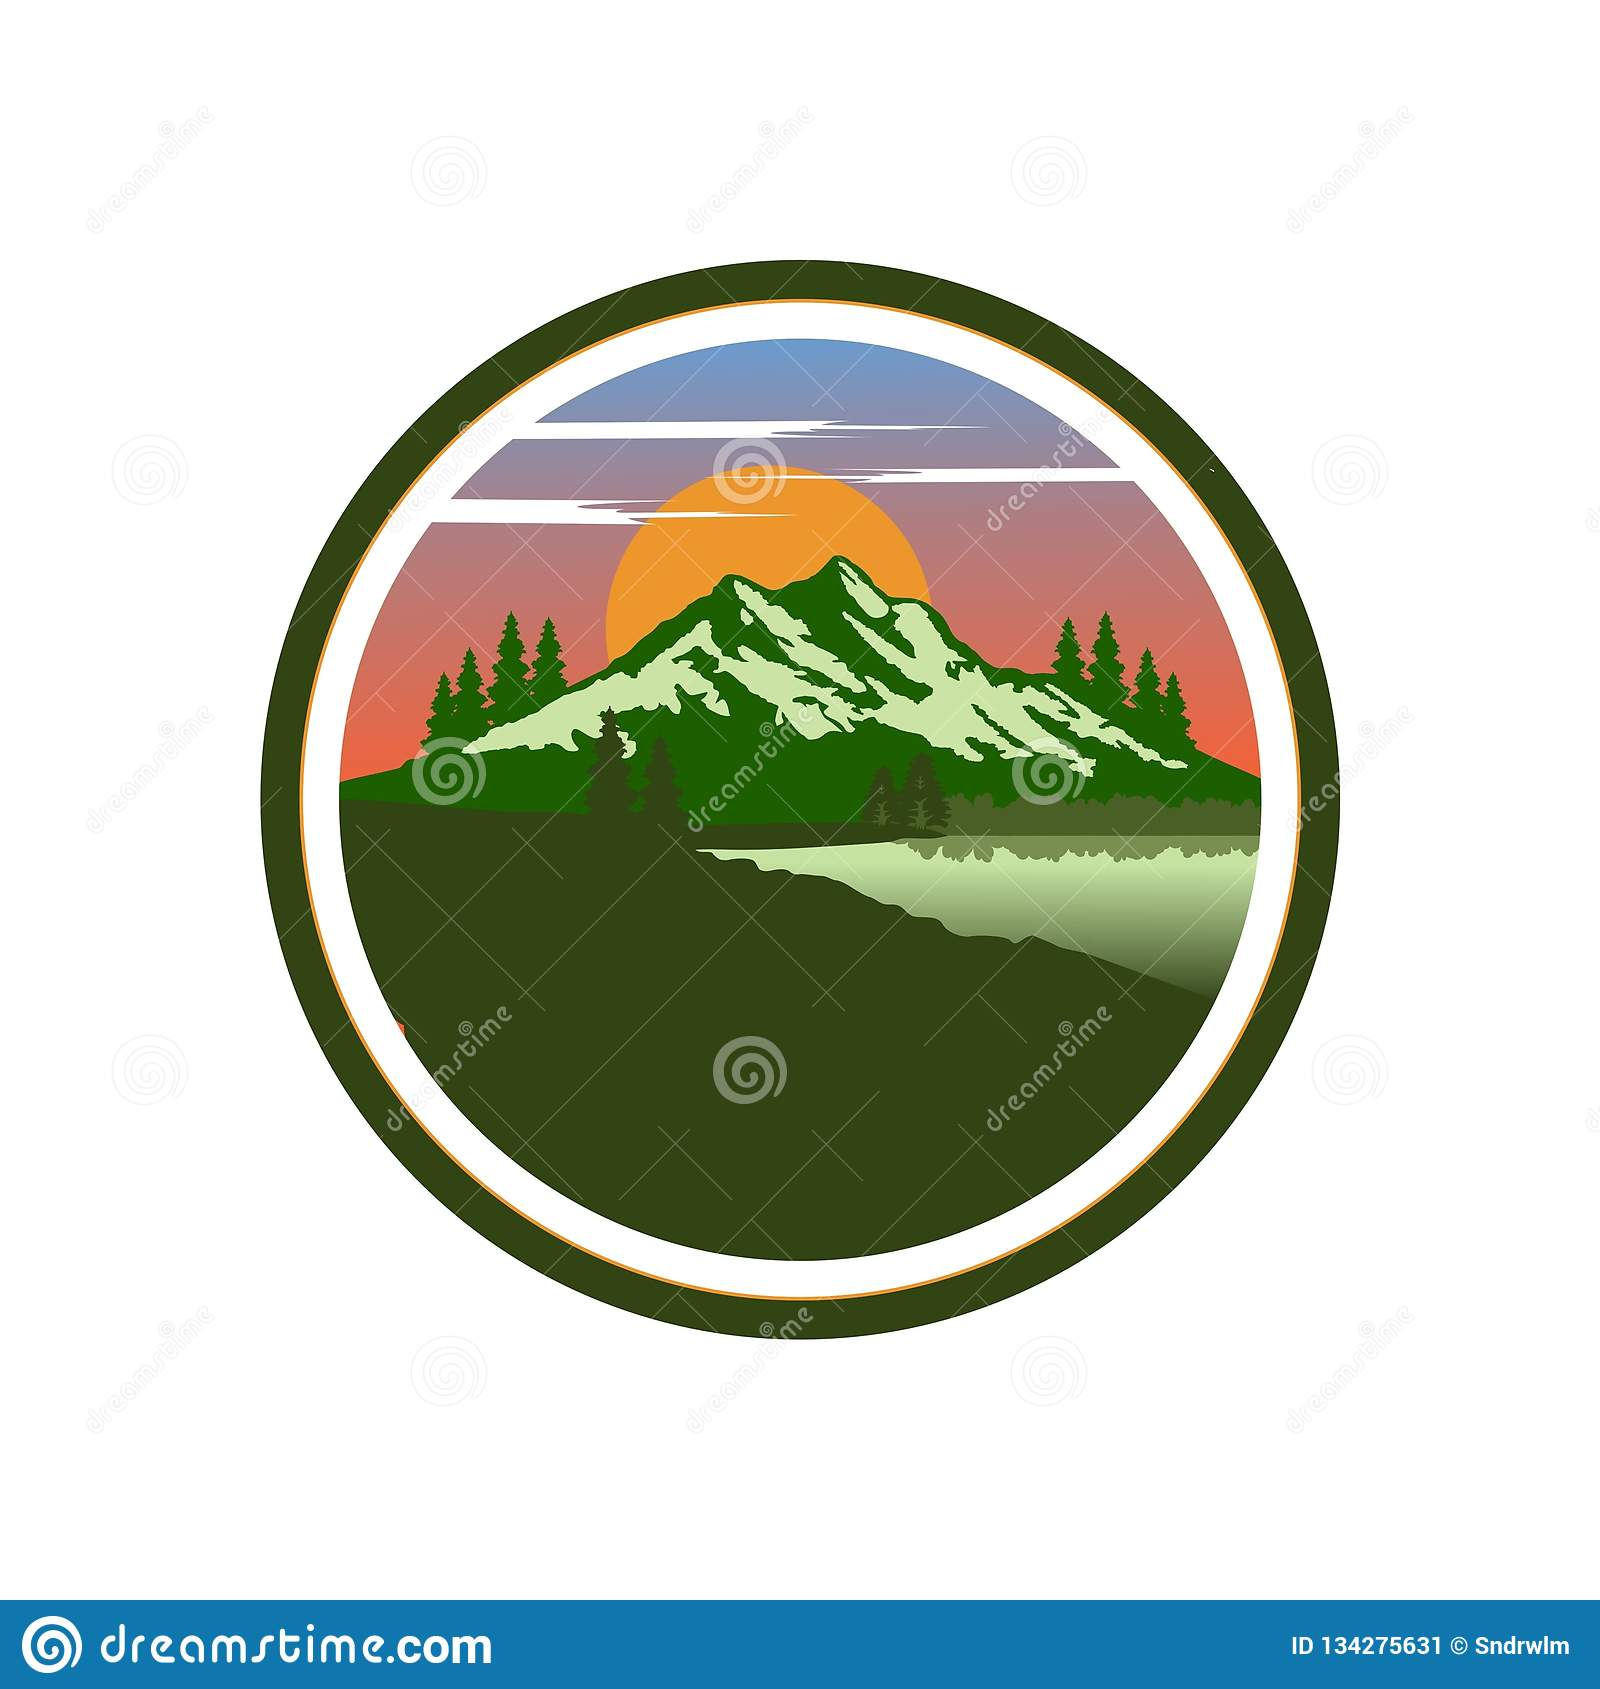 Mountain Landscape Design Vector Stock Vector Illustration Of Mountain Happiness 134275631,Pink Baby Shower Nail Designs